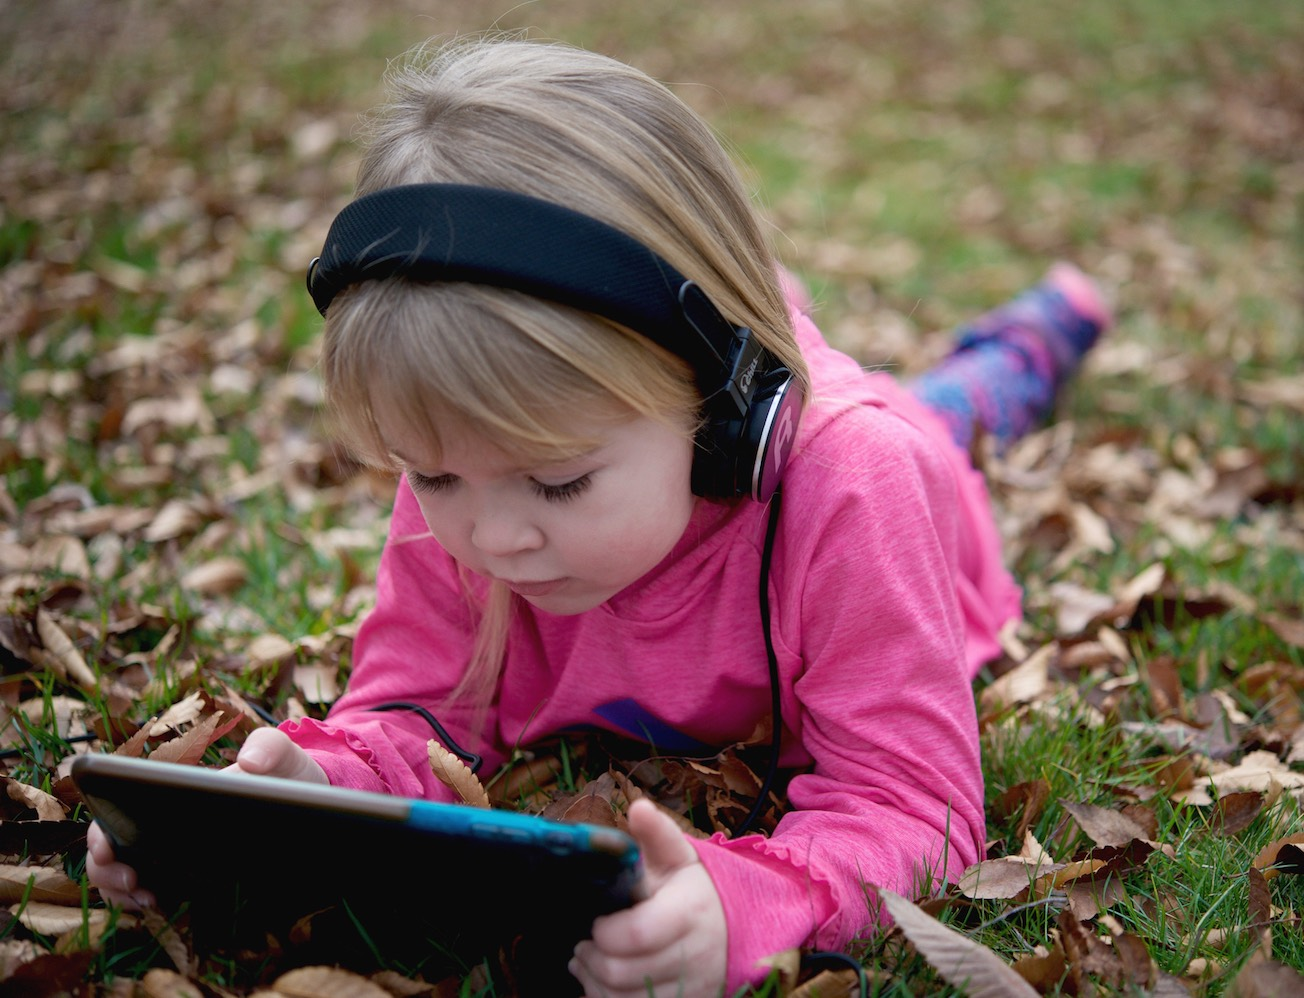 Chill+Headphones+For+Kids+%26%238211%3B+Small+Heads%2C+Safe+Ears%21